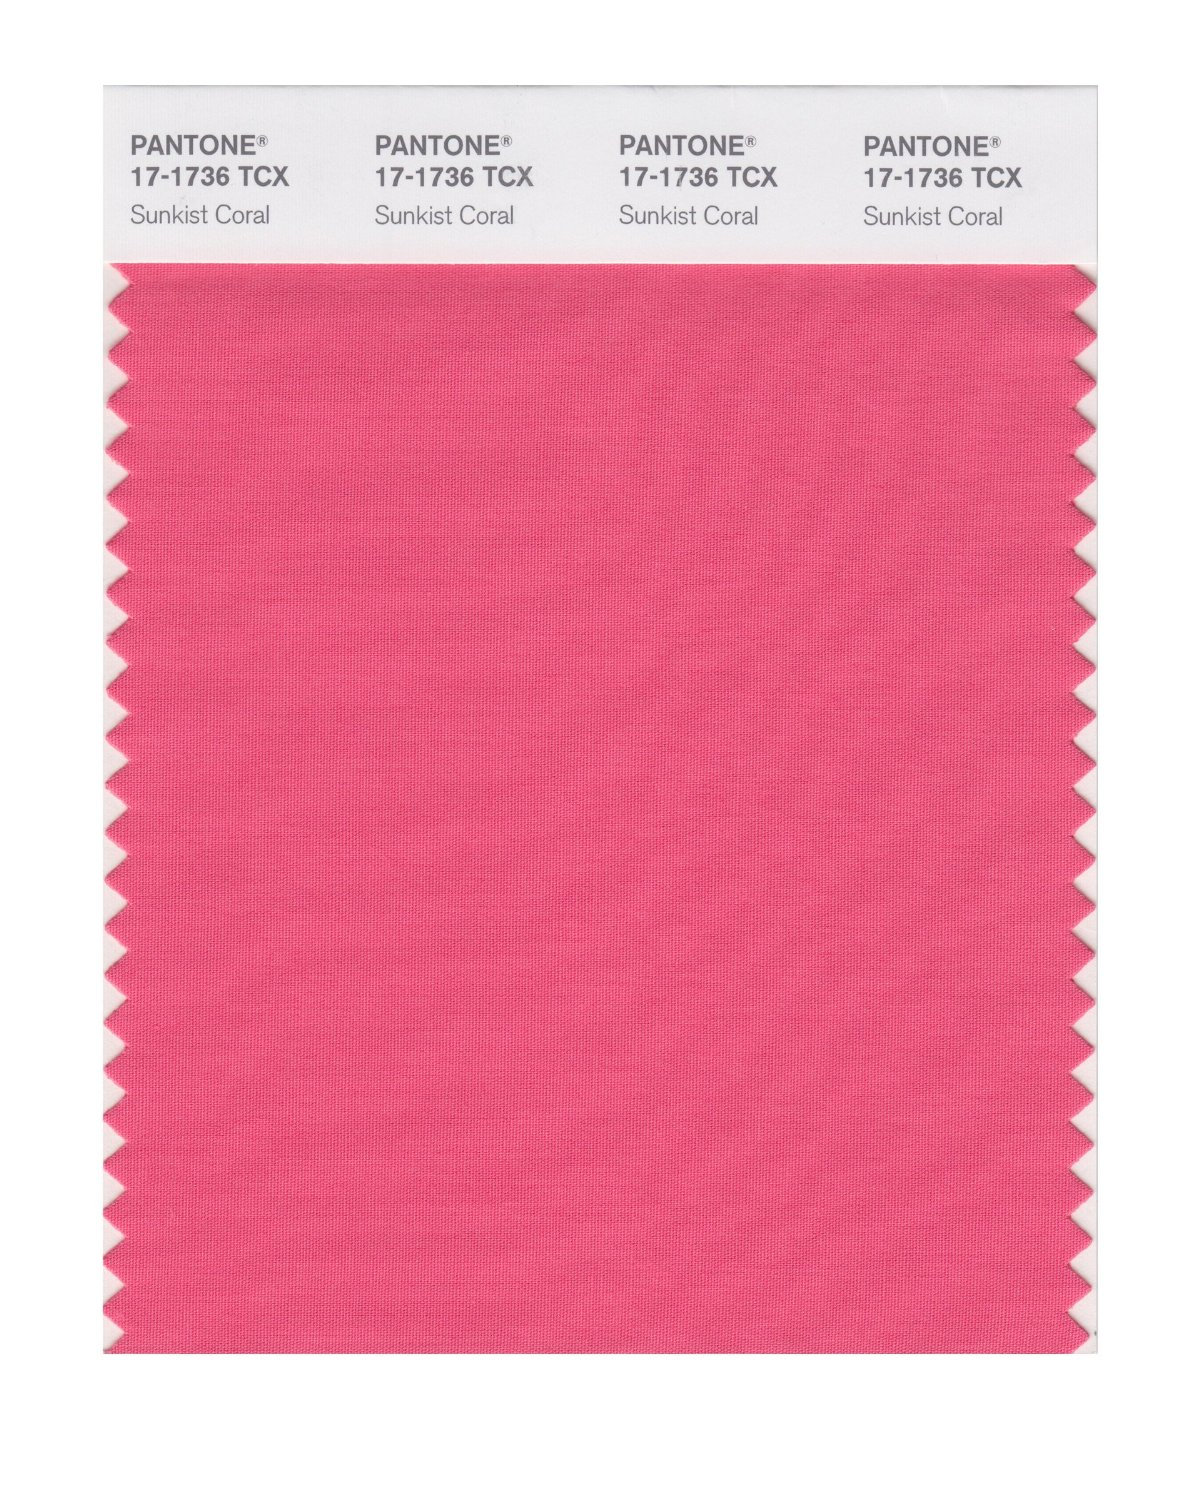 Pantone Smart Swatch 17-1736 Sunkist Coral